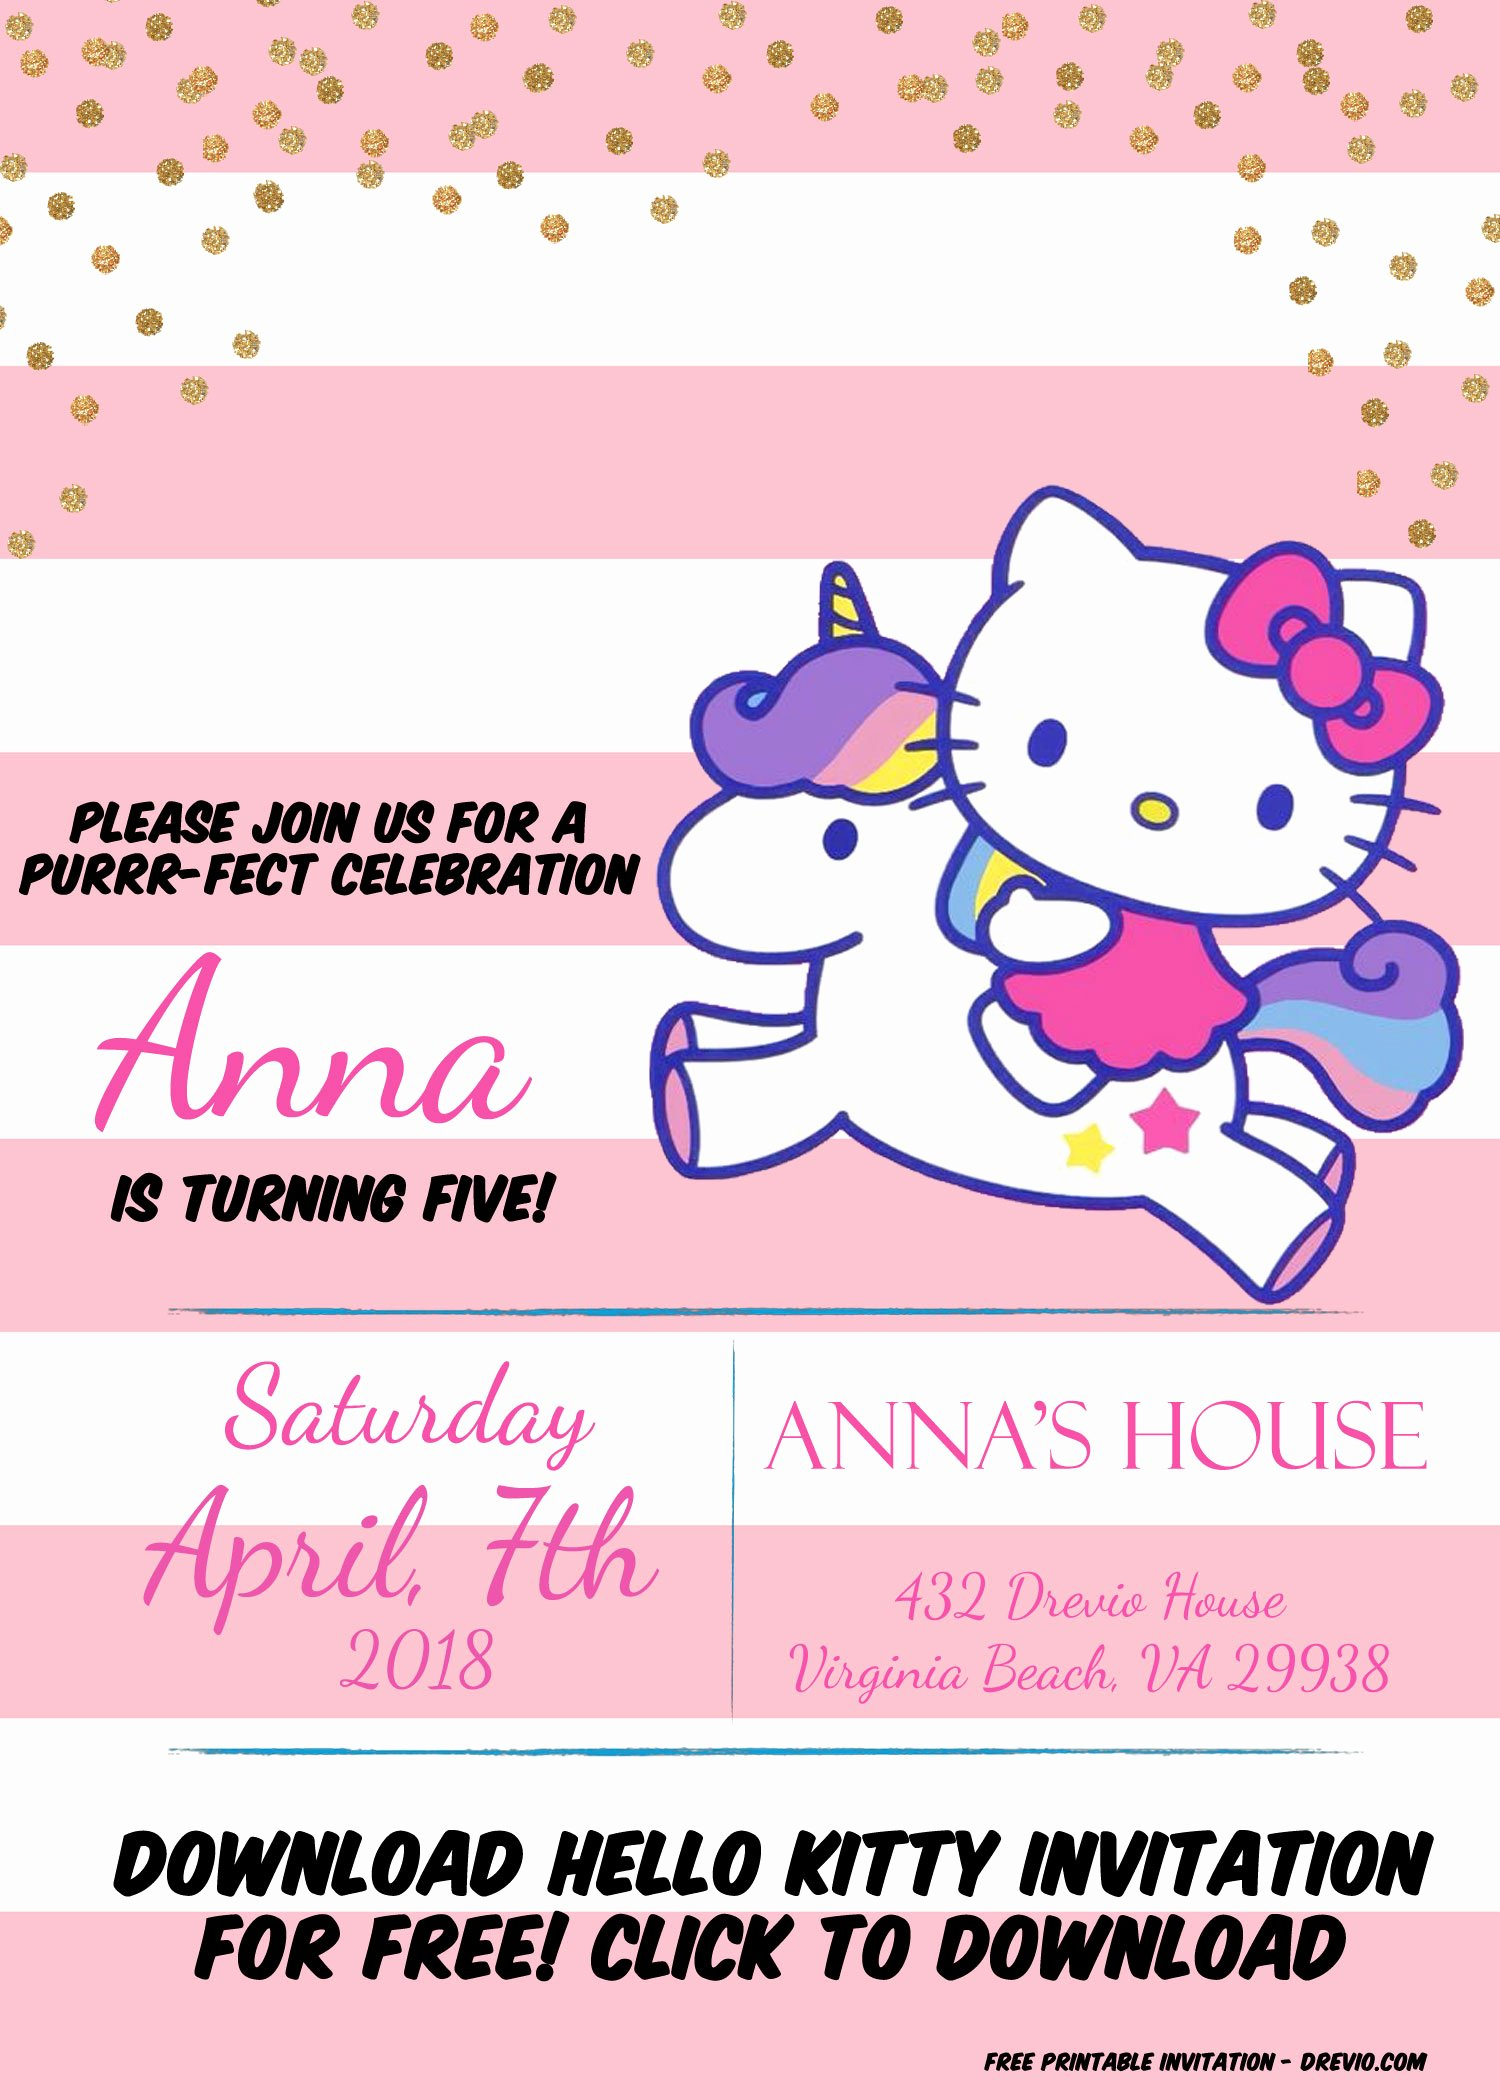 Hello Kitty Party Invite Beautiful Hello Kitty Invitation Template – Portrait Mode